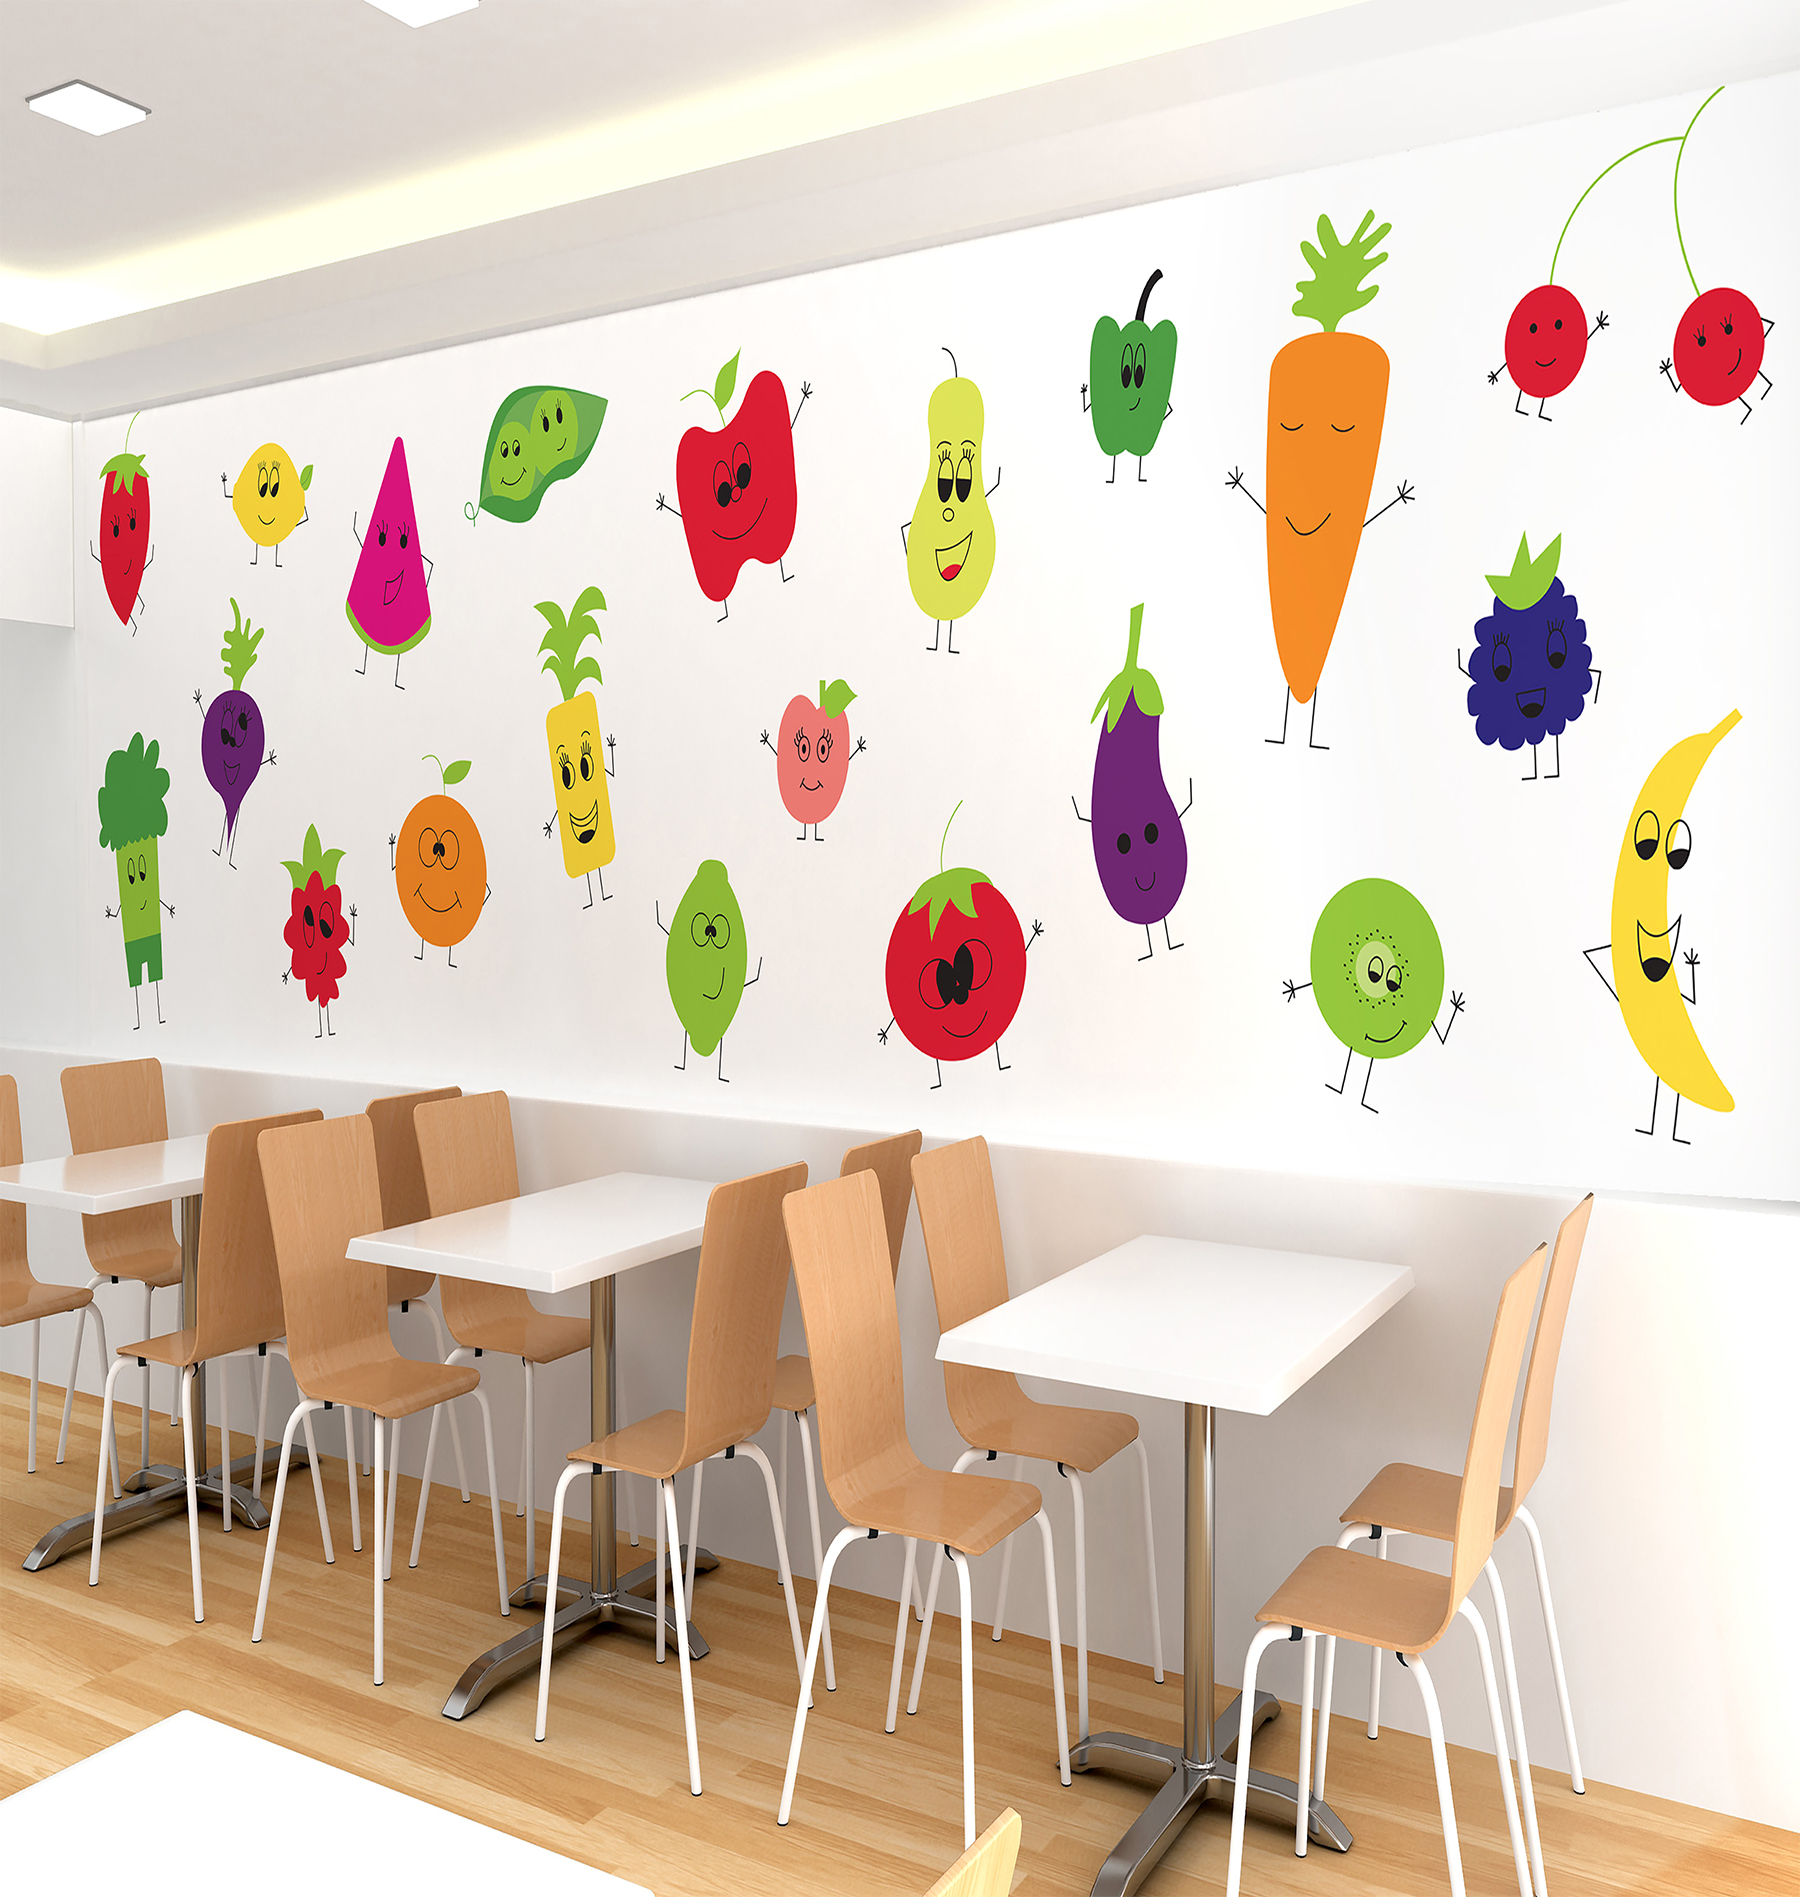 Design for a kid-friendly healthy fast-food restaurant by Kaley Lempke, Livermore, Iowa, a senior in graphic design.